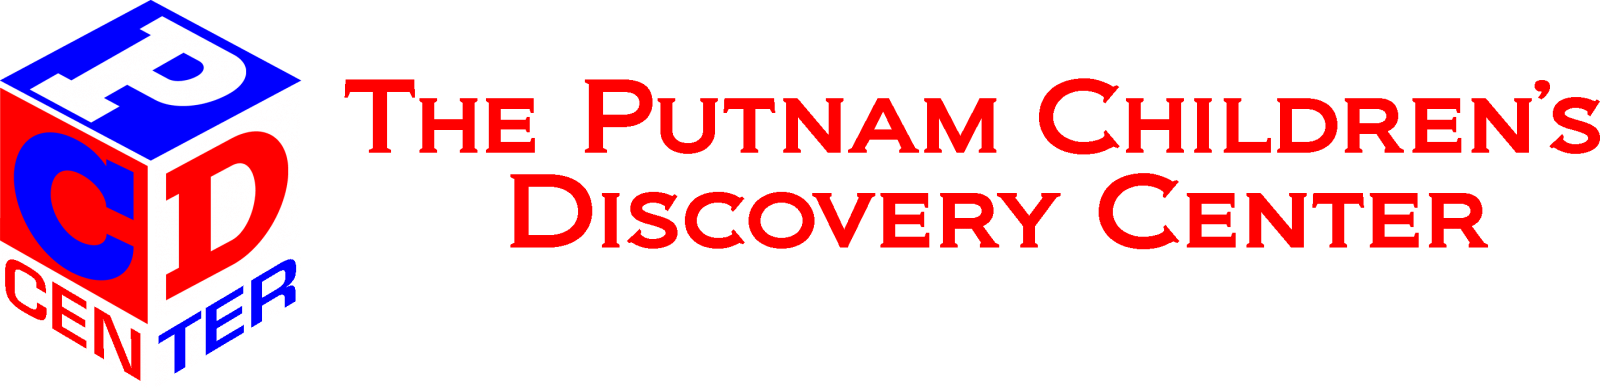 The Putnam Children's Discovery Center